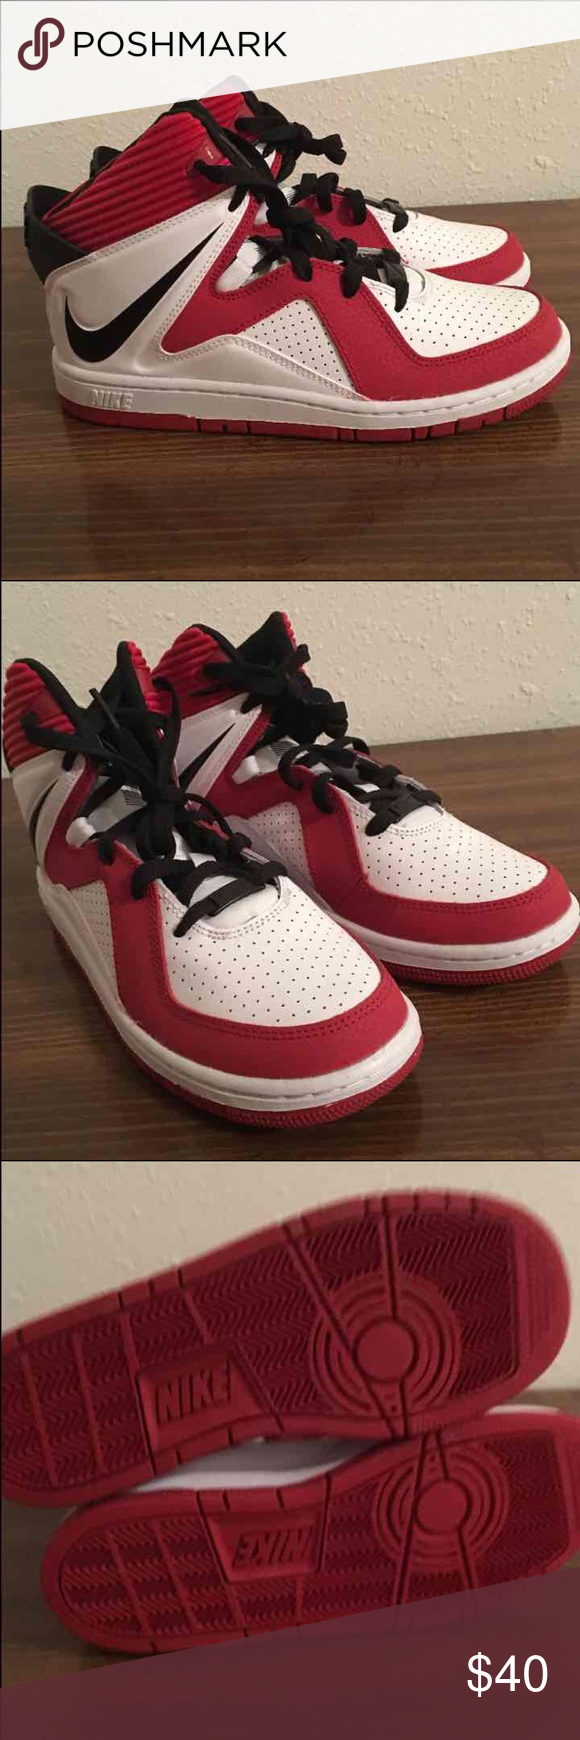 Nike Court Invader (GS) Basketball Shoes Brand new Nike Court Invader basketball shoes size 5.5Y Nike Shoes Sneakers